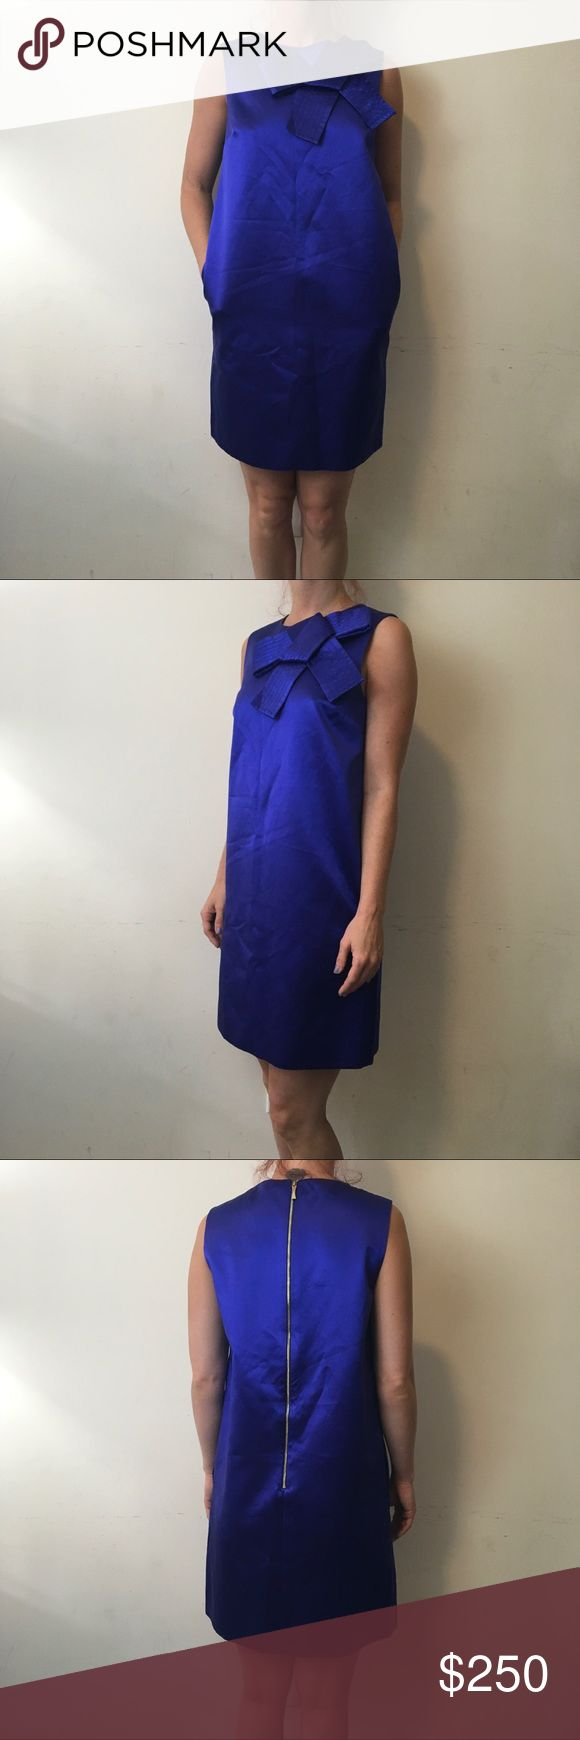 Madison Ave Kate Spade Bow Blue Silk Satin Dress Madison Ave Kate Spade dress with a sleeveless body and zipped closure. Satin silk and is a vibrant color of blue! Very rare and hard to find don't miss this gorgeous dress!!! Unique and perfect for weddings or special occasions! 🎀🎀🎀🎀 kate spade Dresses